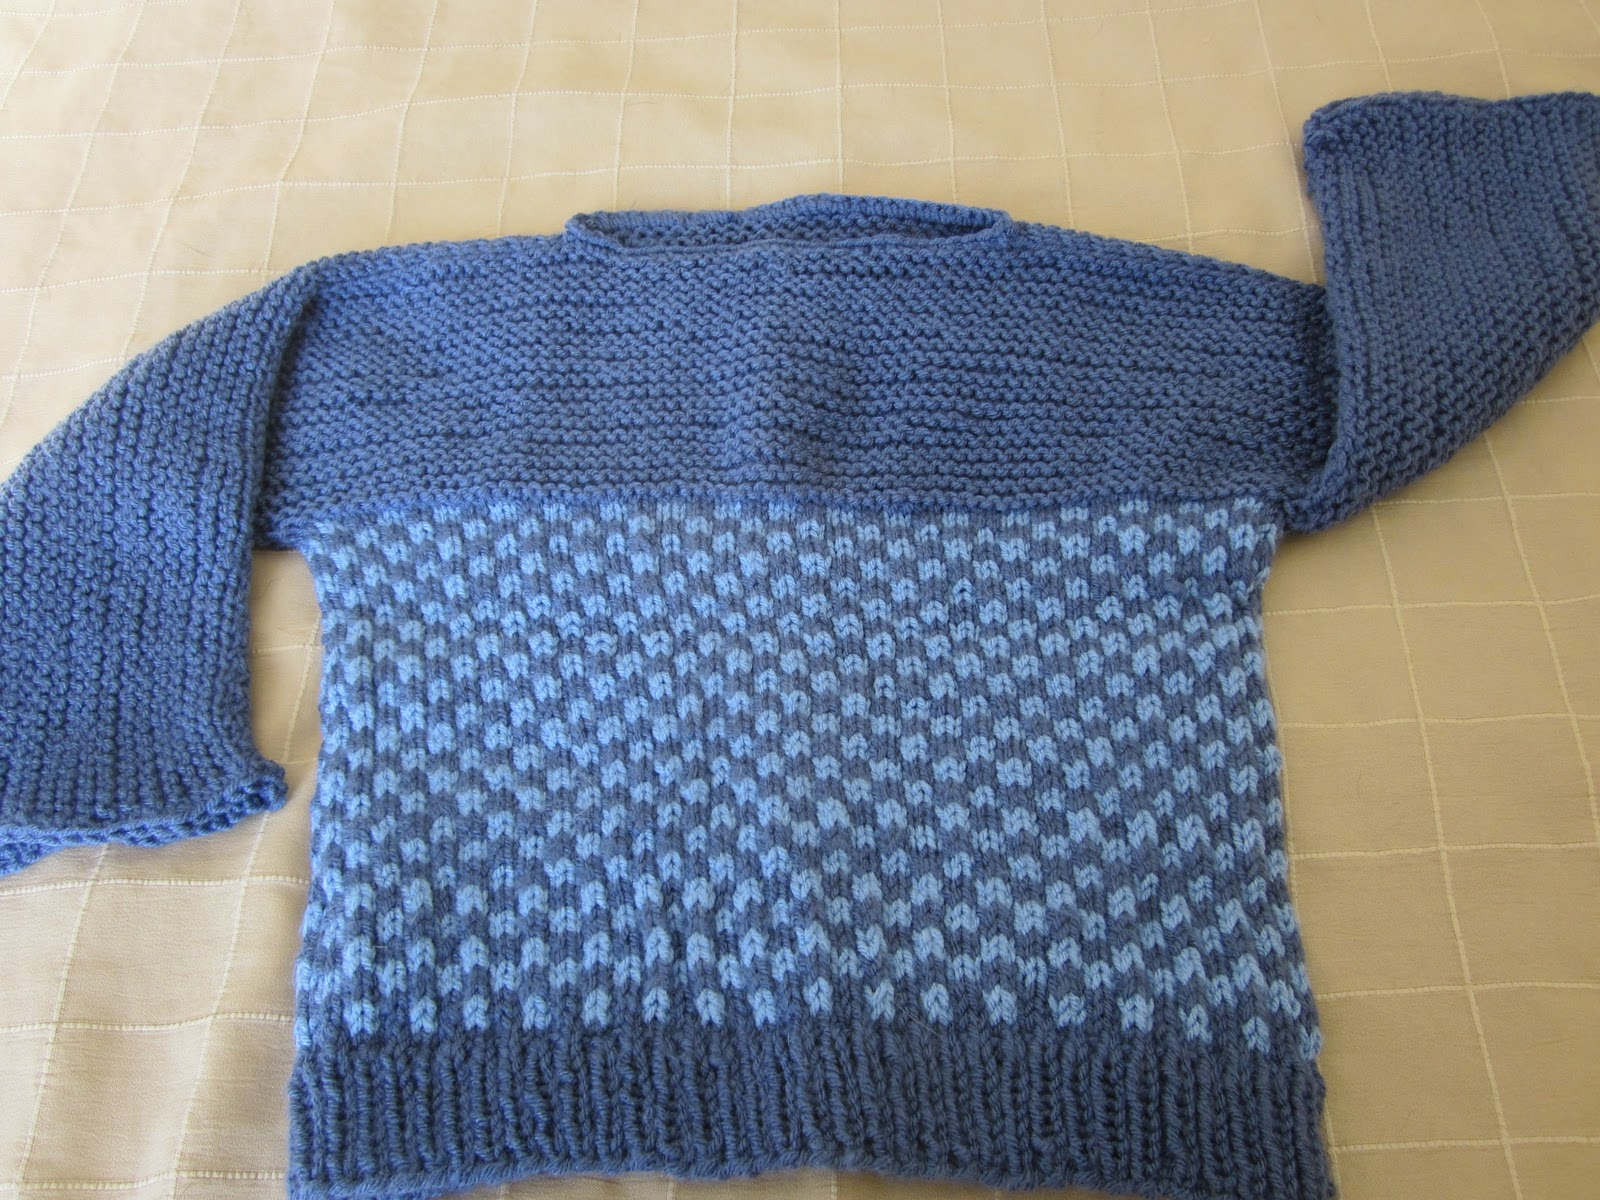 Knitting Design For Baby Boy Sweater : The Zees Go West: 80 Sweaters for Knit for Kids, Part 2